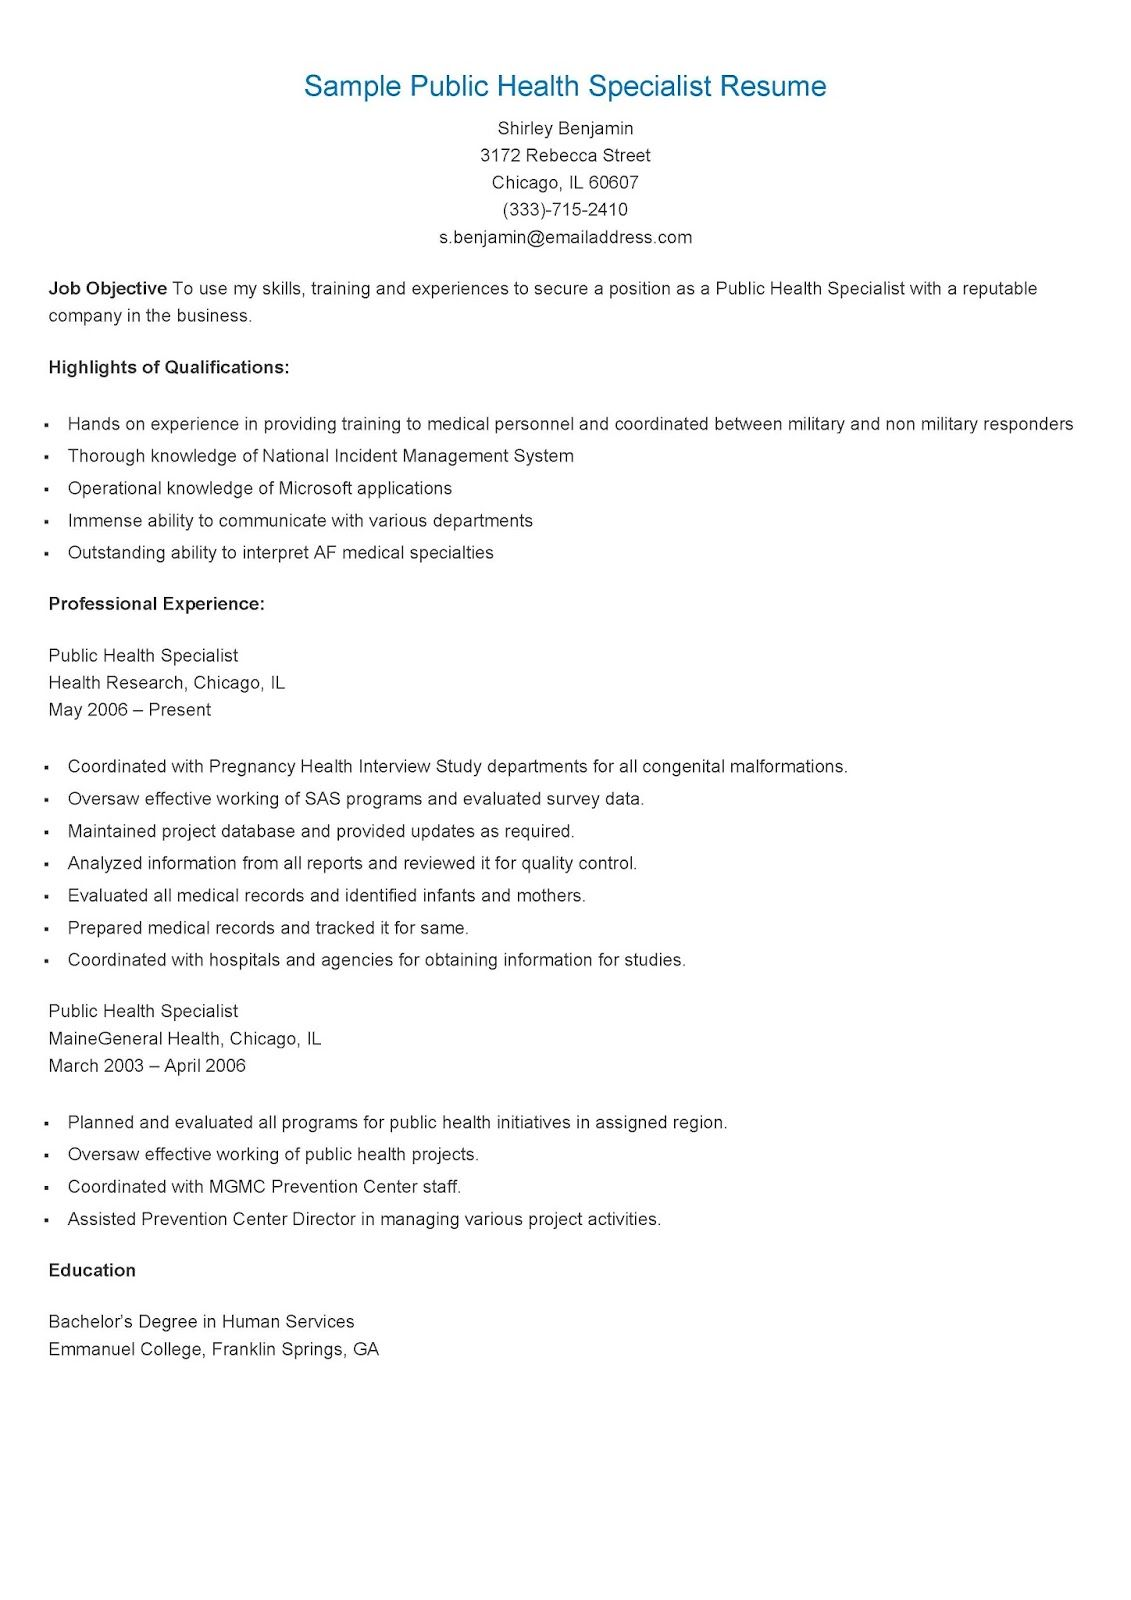 sample public health specialist resume